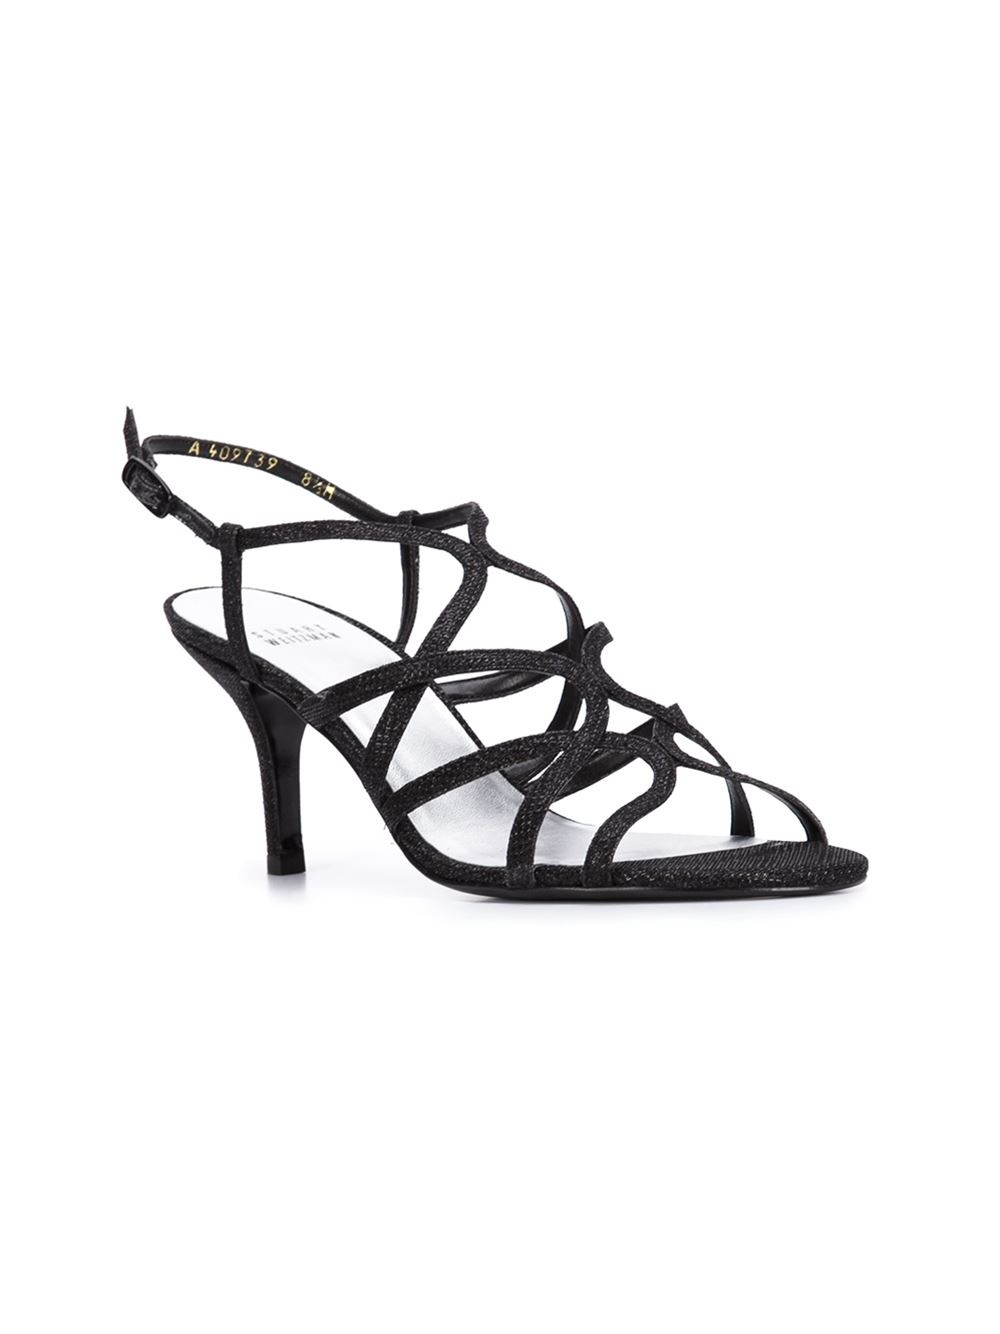 White Strappy Sandals Kitten Heel